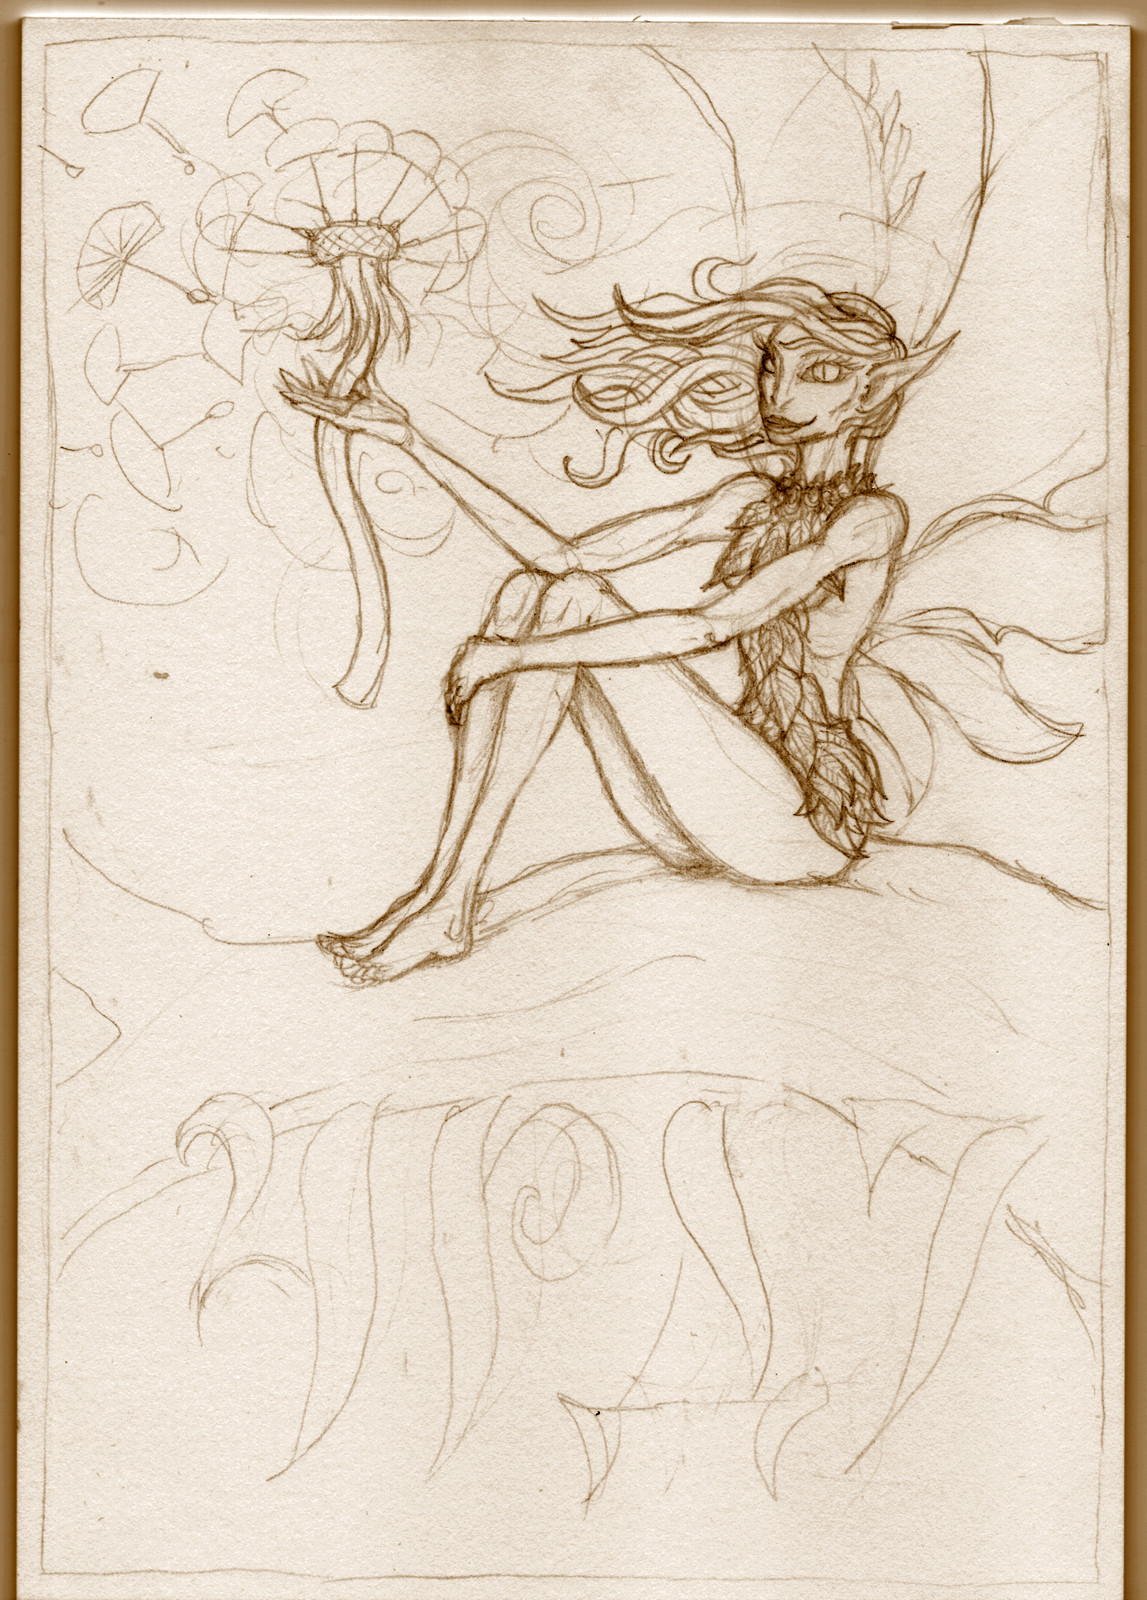 ... pencil lineart